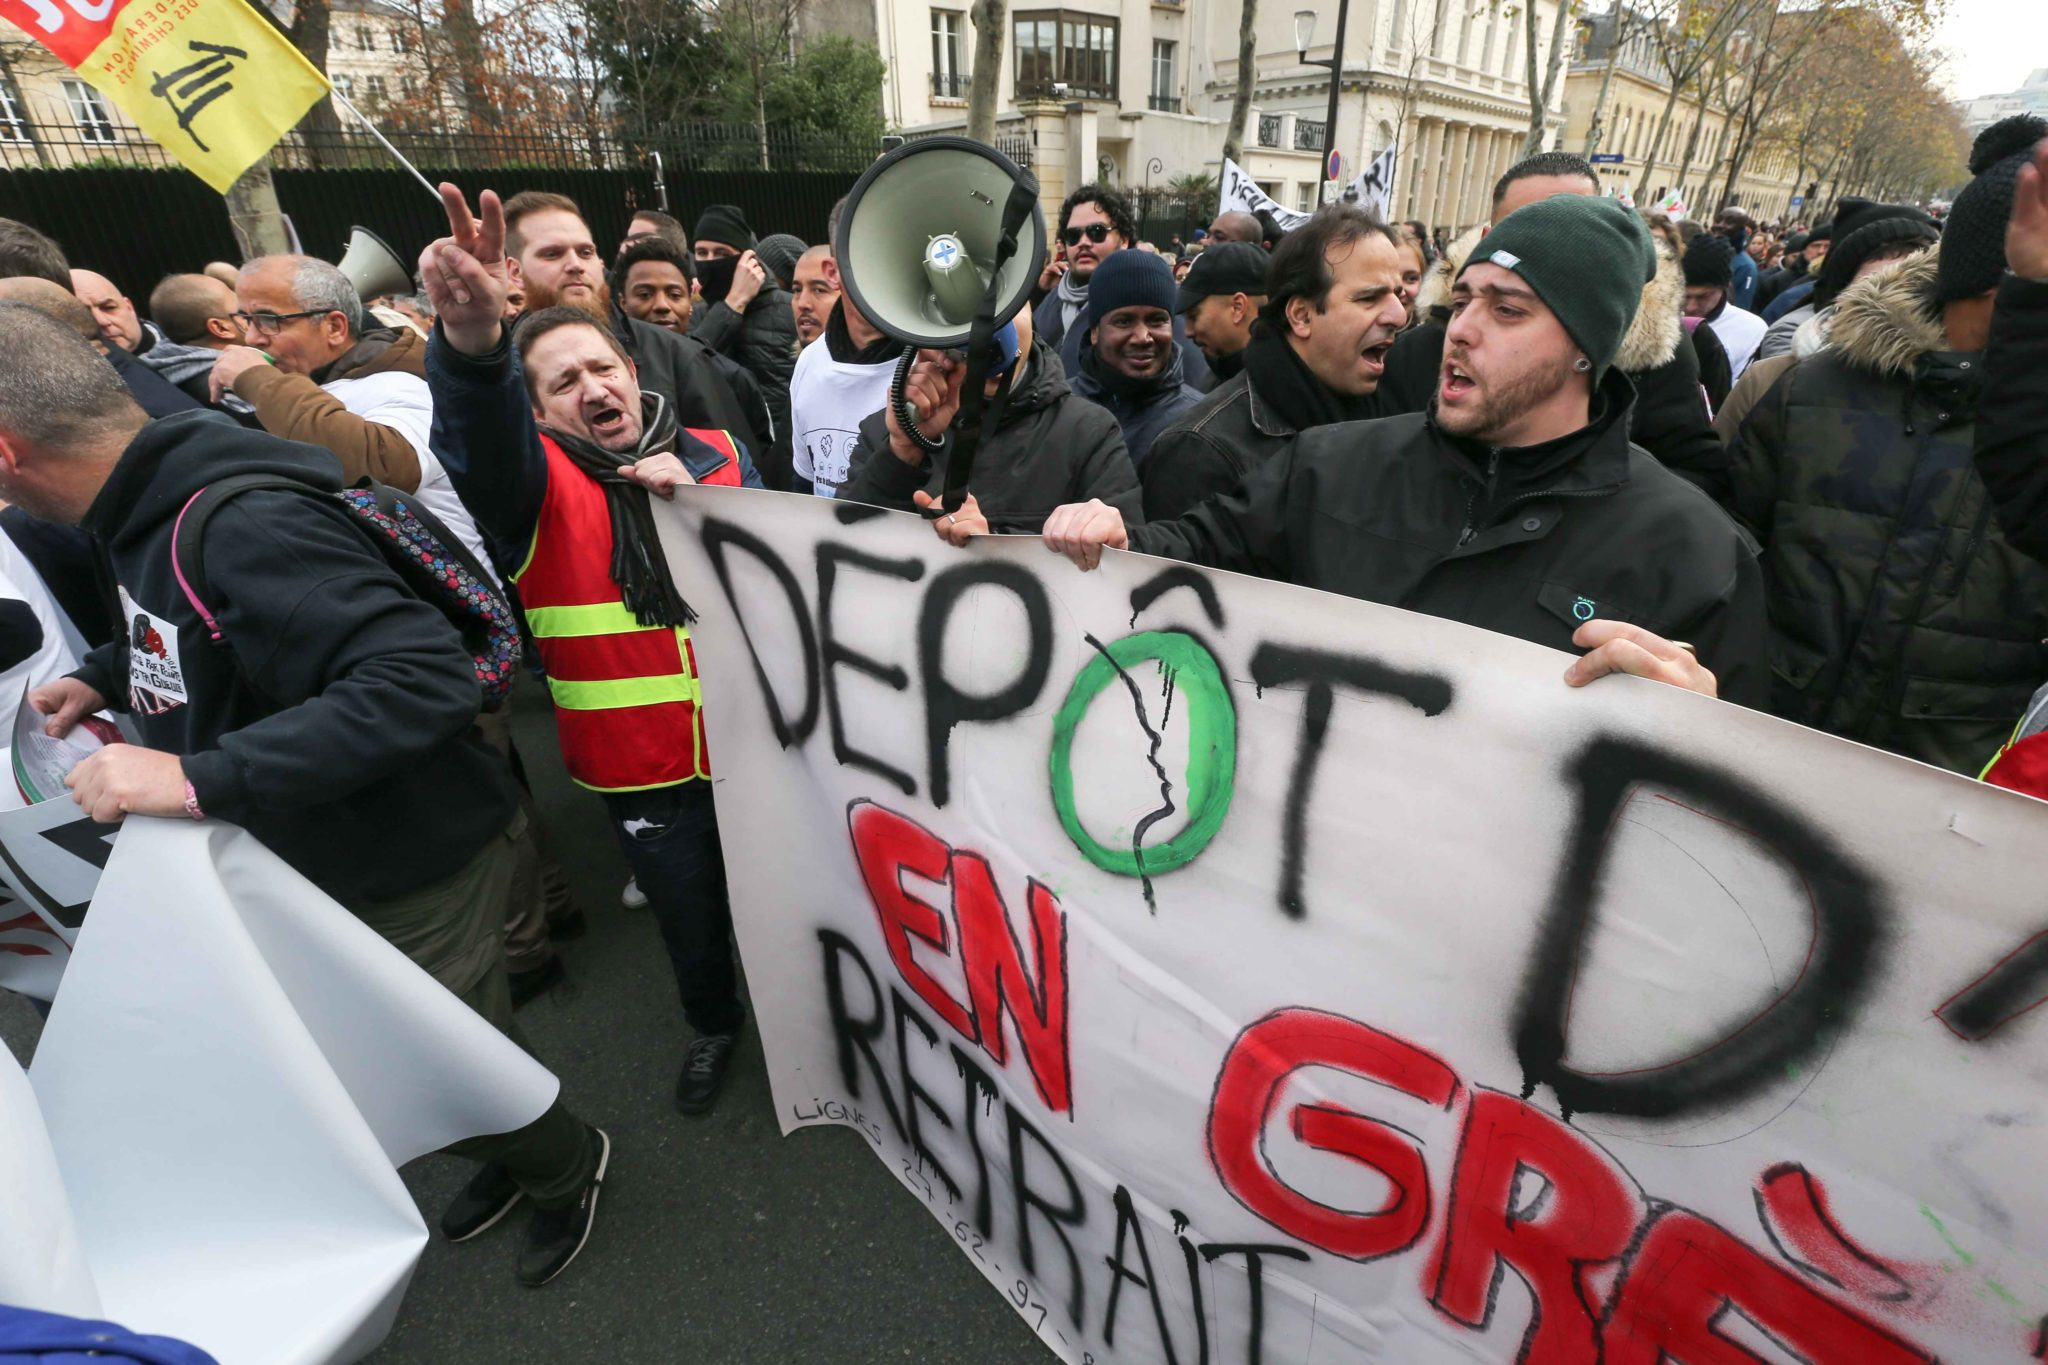 Parisien transport workers march in Paris, on December 10, 2019 on a sixth day of a strike of public transport operators SNCF and RATP employees over French government's plan to overhaul the country's retirement system. Unions have vowed to keep up the fig